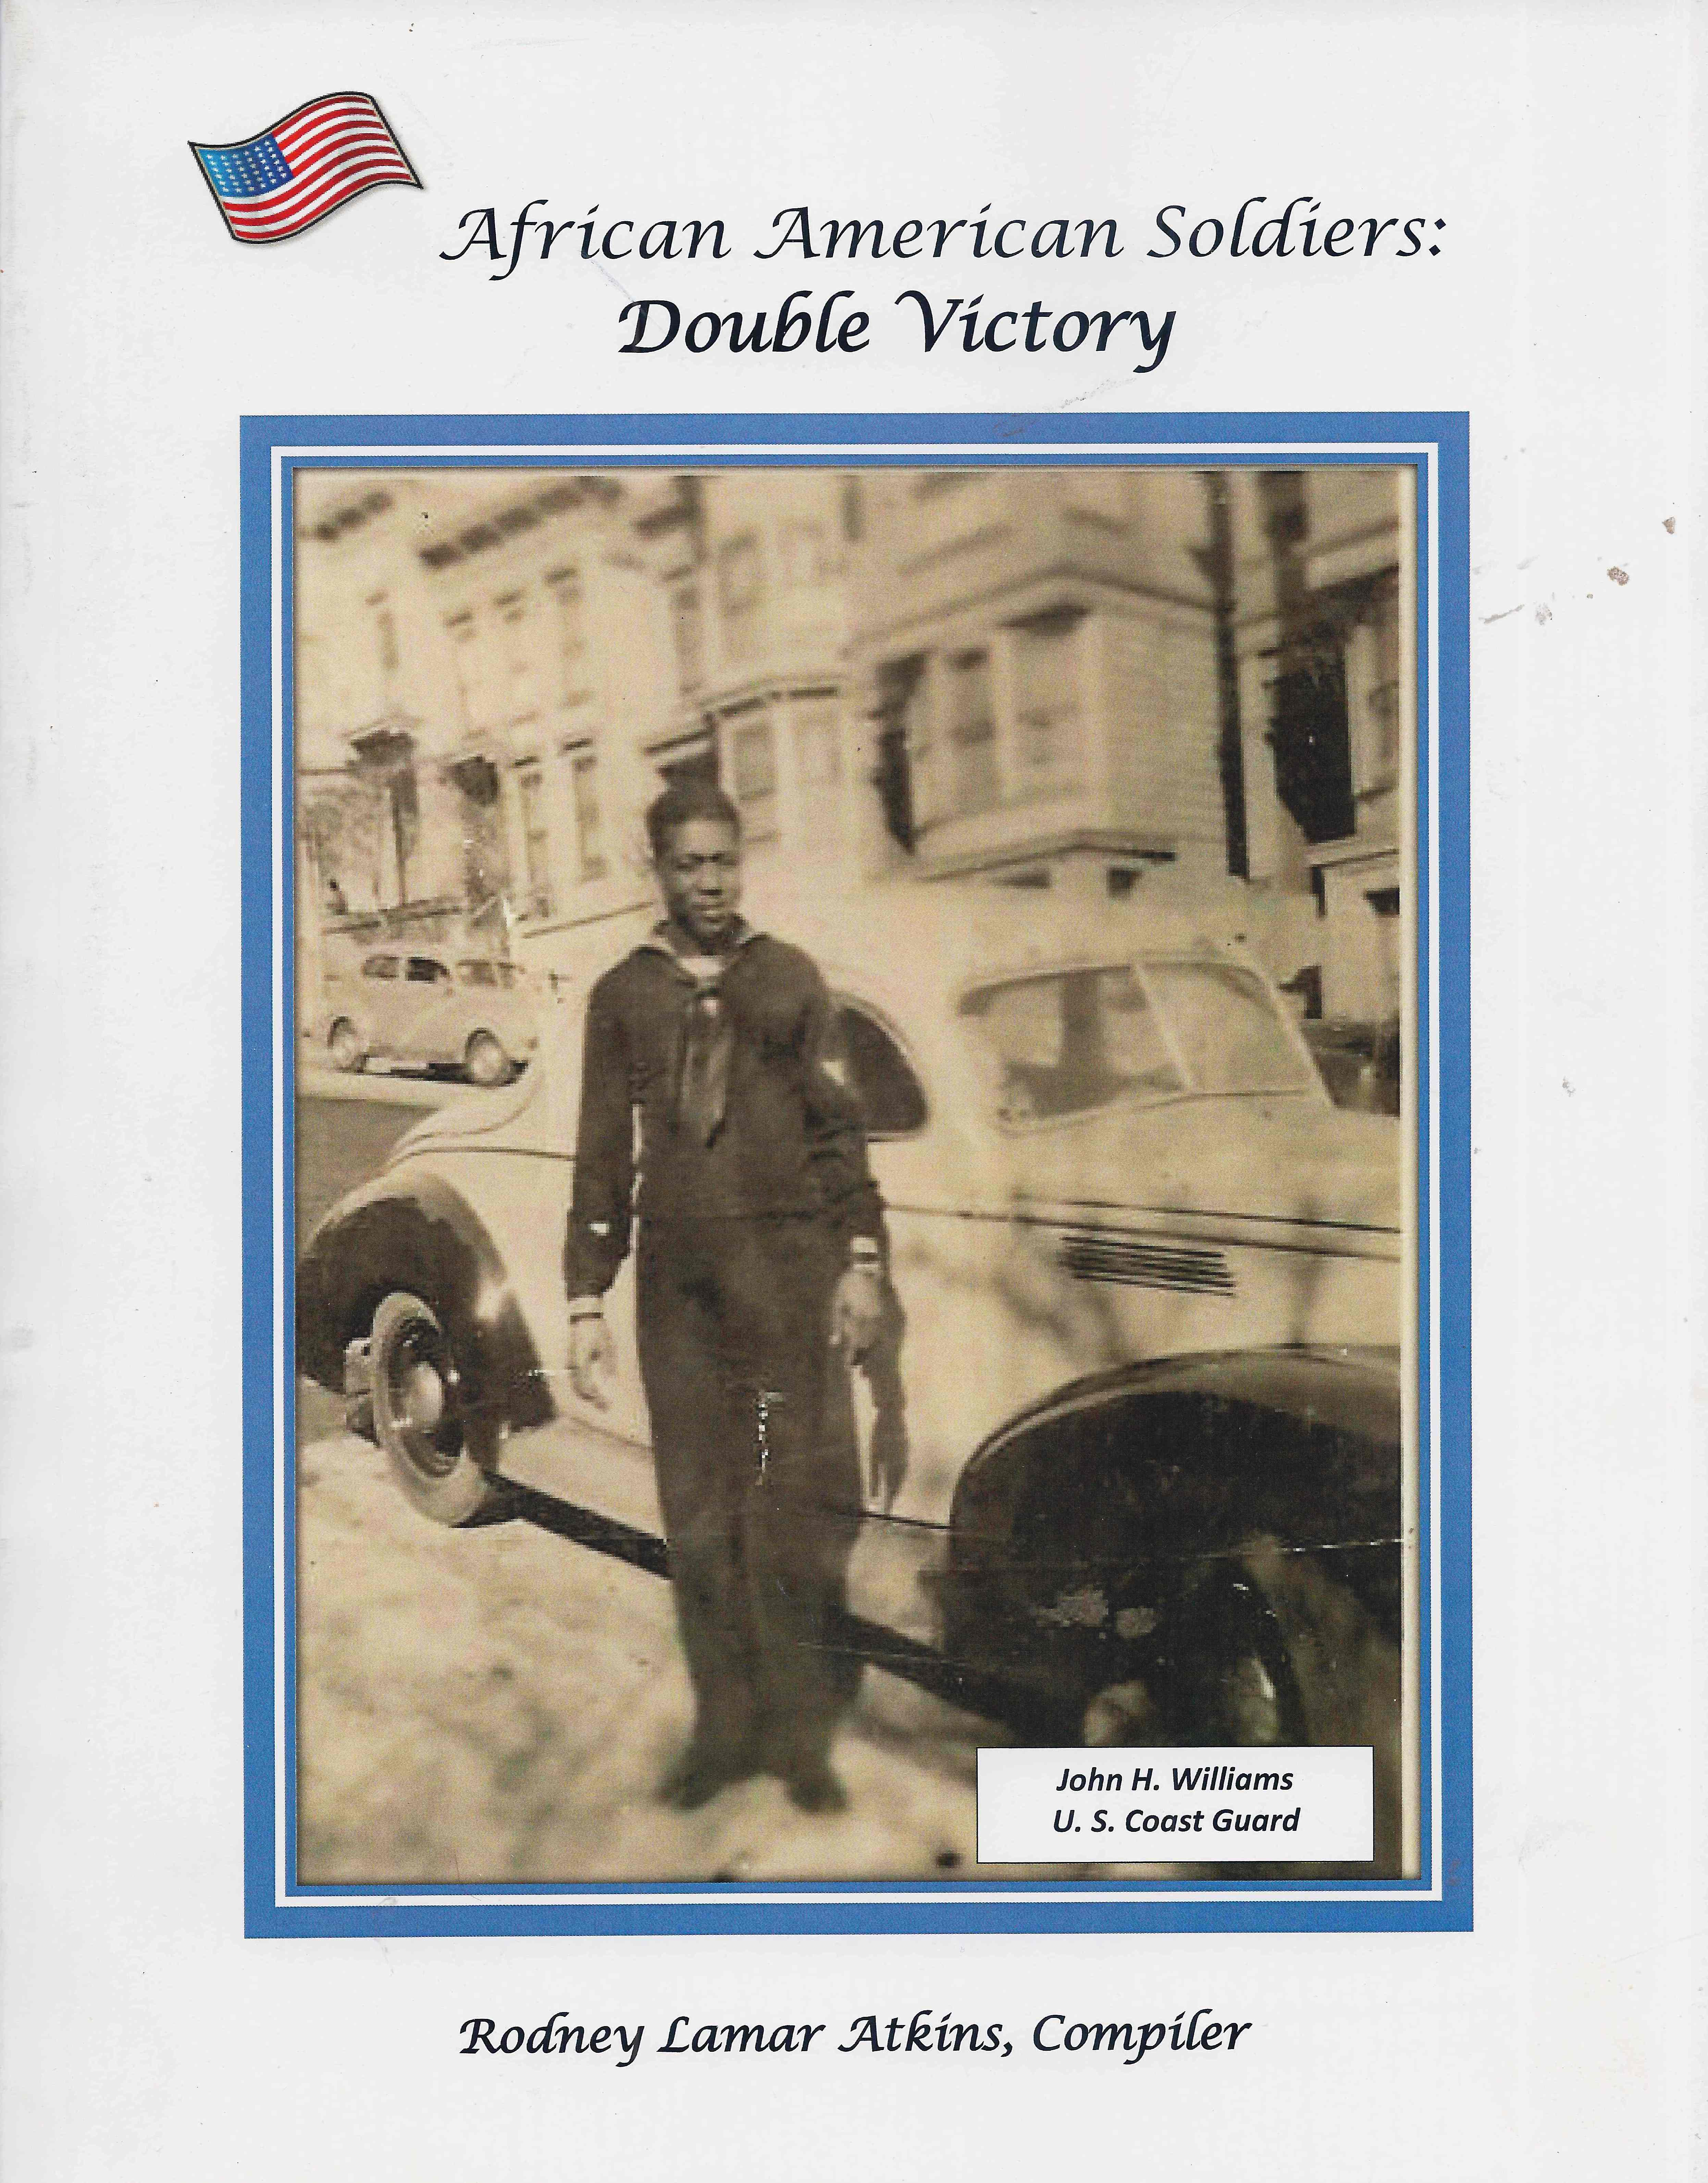 African American Soldiers: Double Victory compiled by Rodney Lamar Atkins.